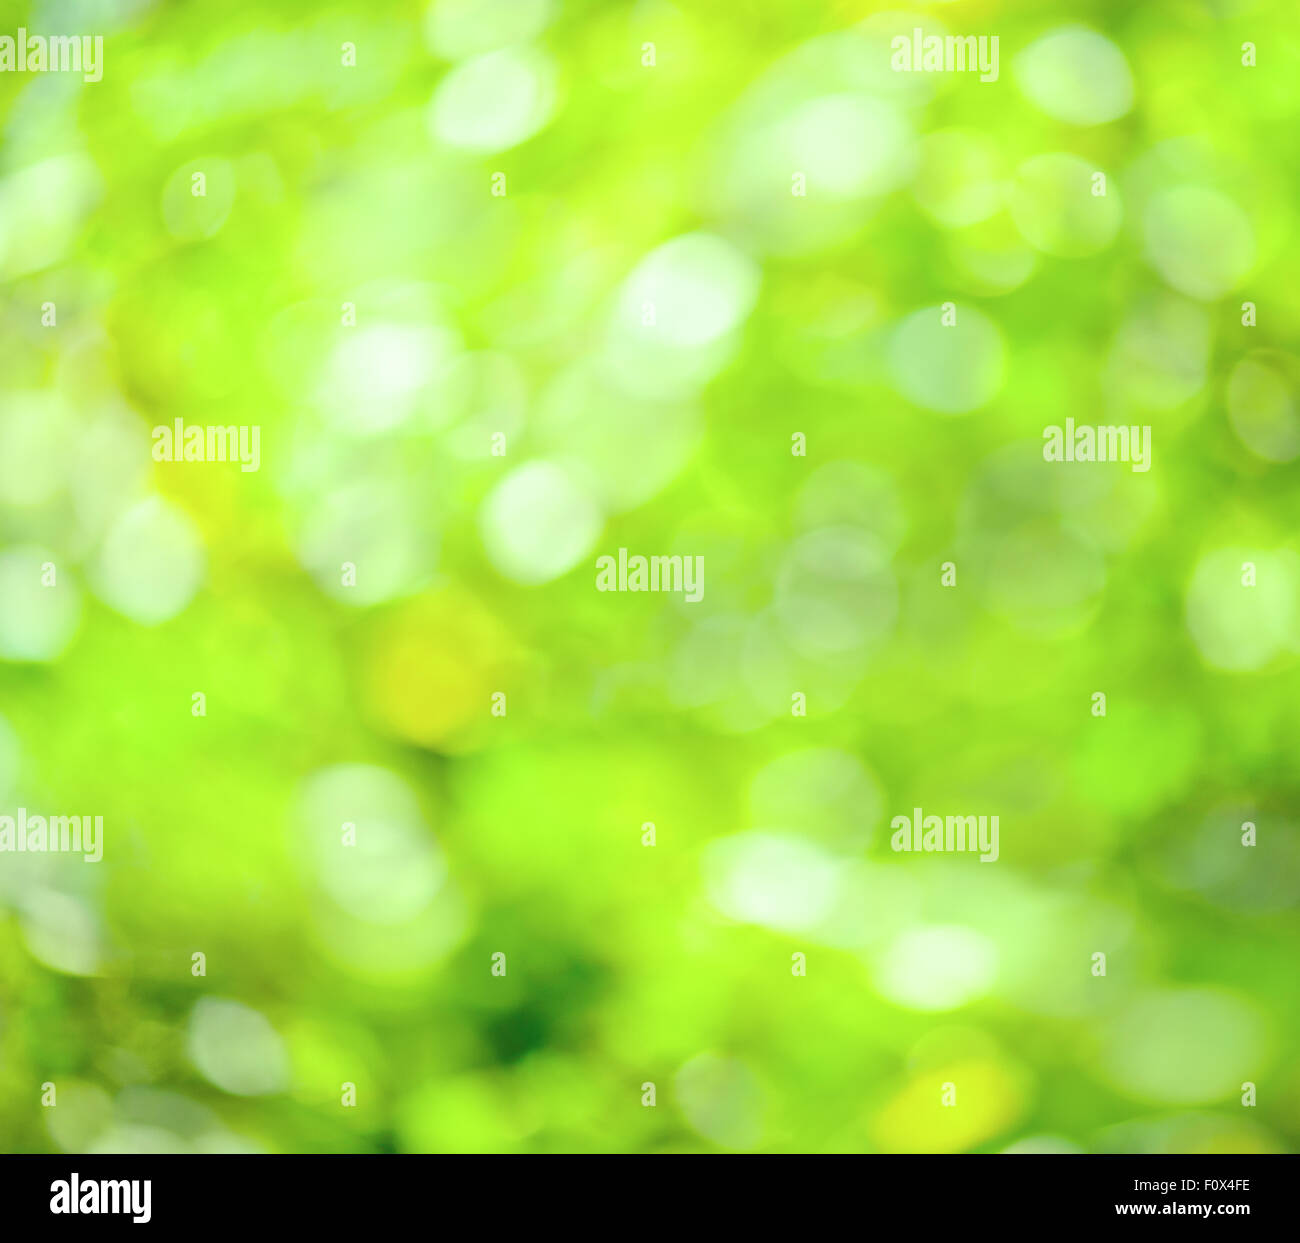 Abstract defocused blur green spring background - Stock Image